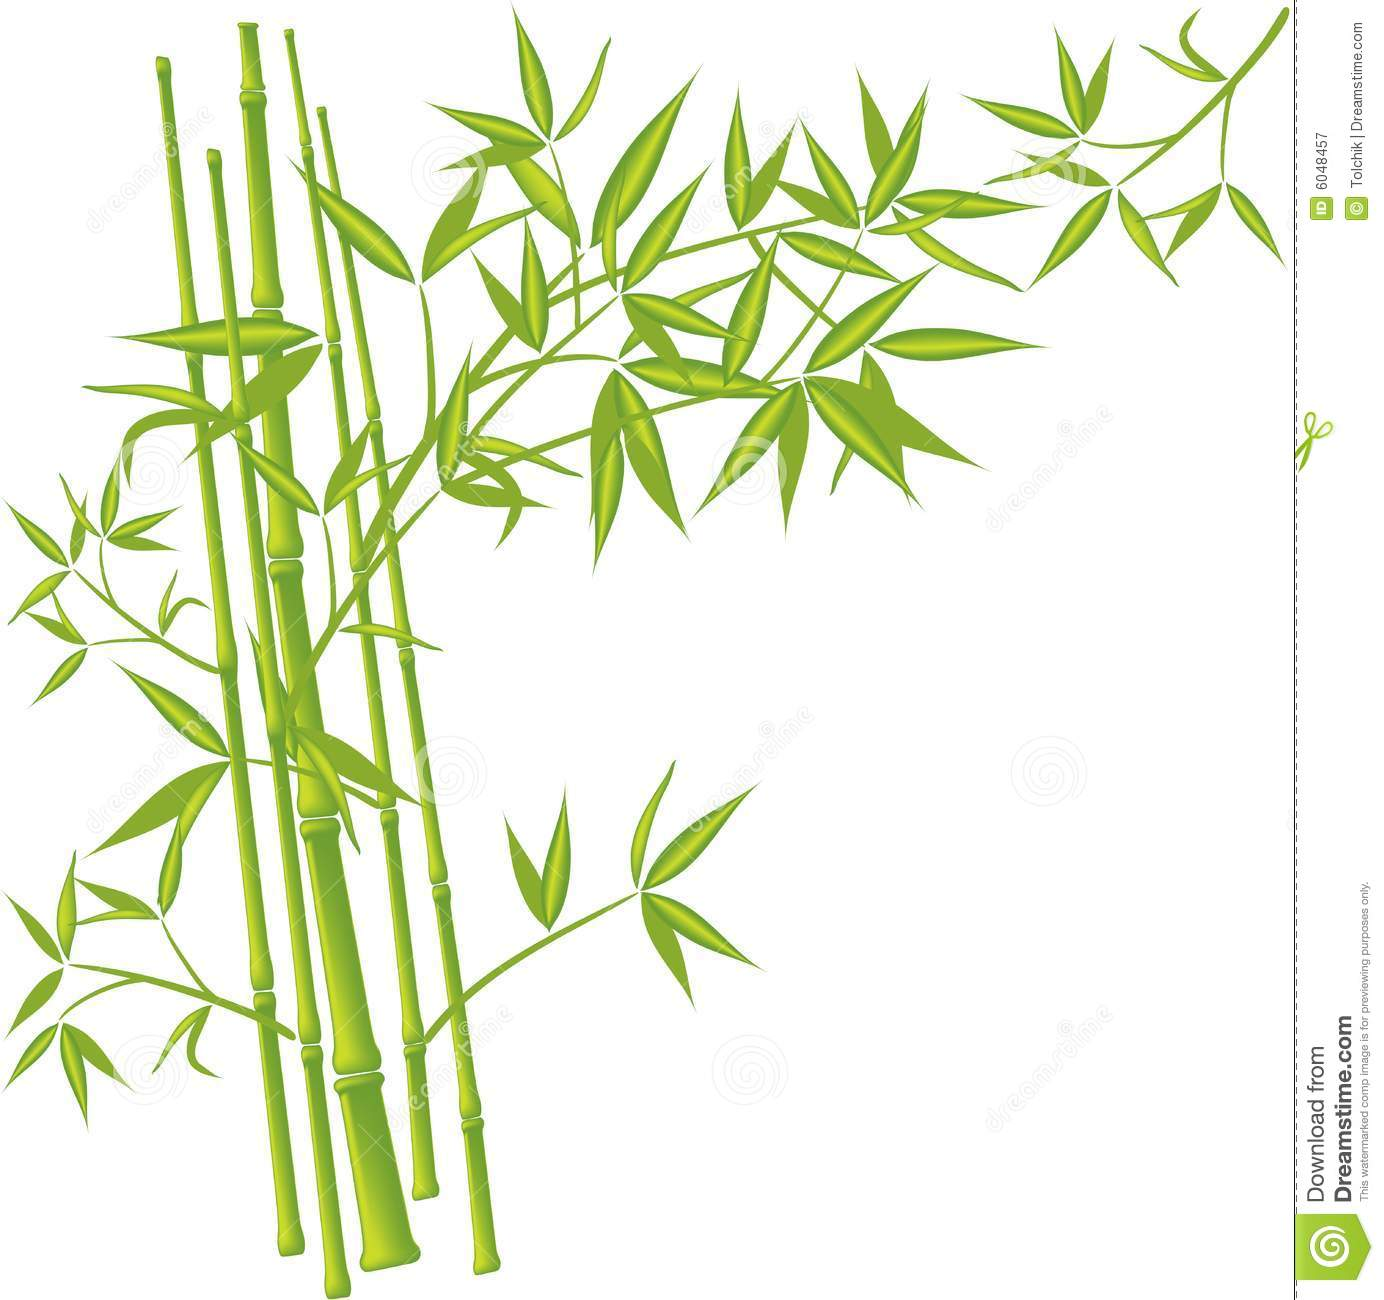 Bamboo Art Design : Bamboo vector stock illustration of growth